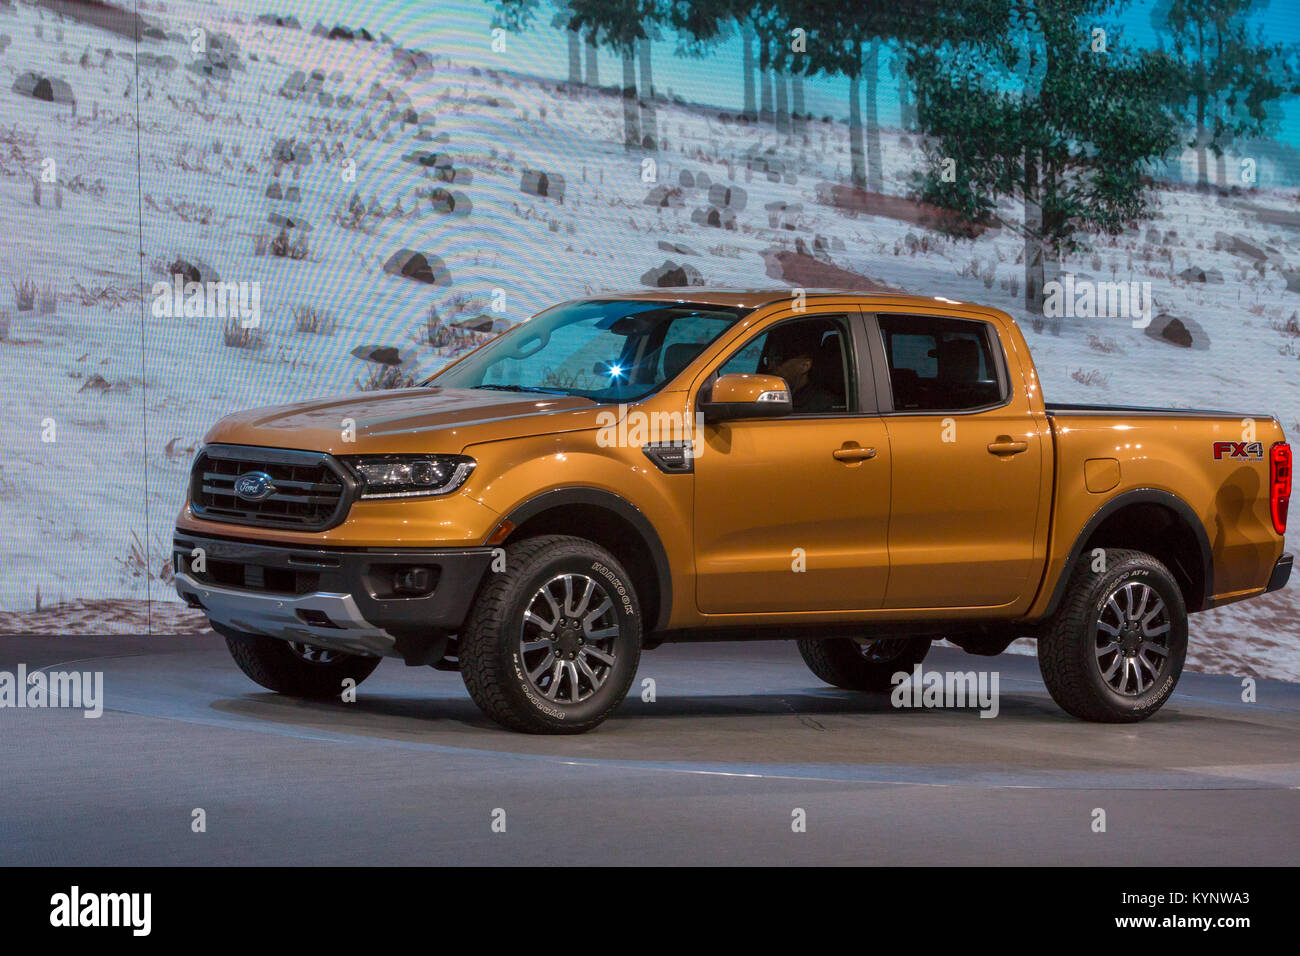 Detroit michigan usa 14th jan 2018 the new 2019 ford ranger fx4 at the north american international auto show credit jim west alamy live news